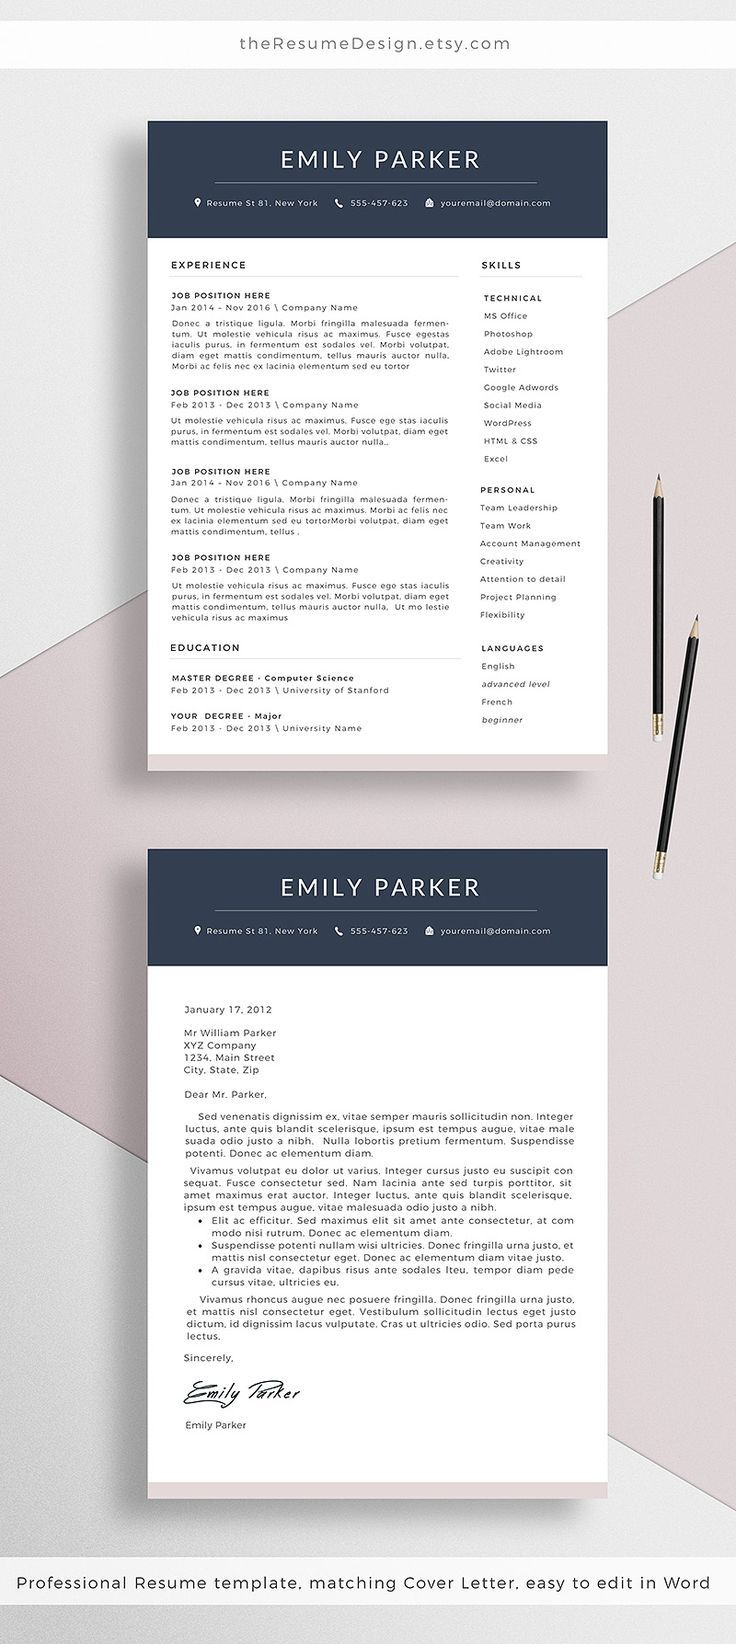 Our New Professional Resume Template Cover Letter